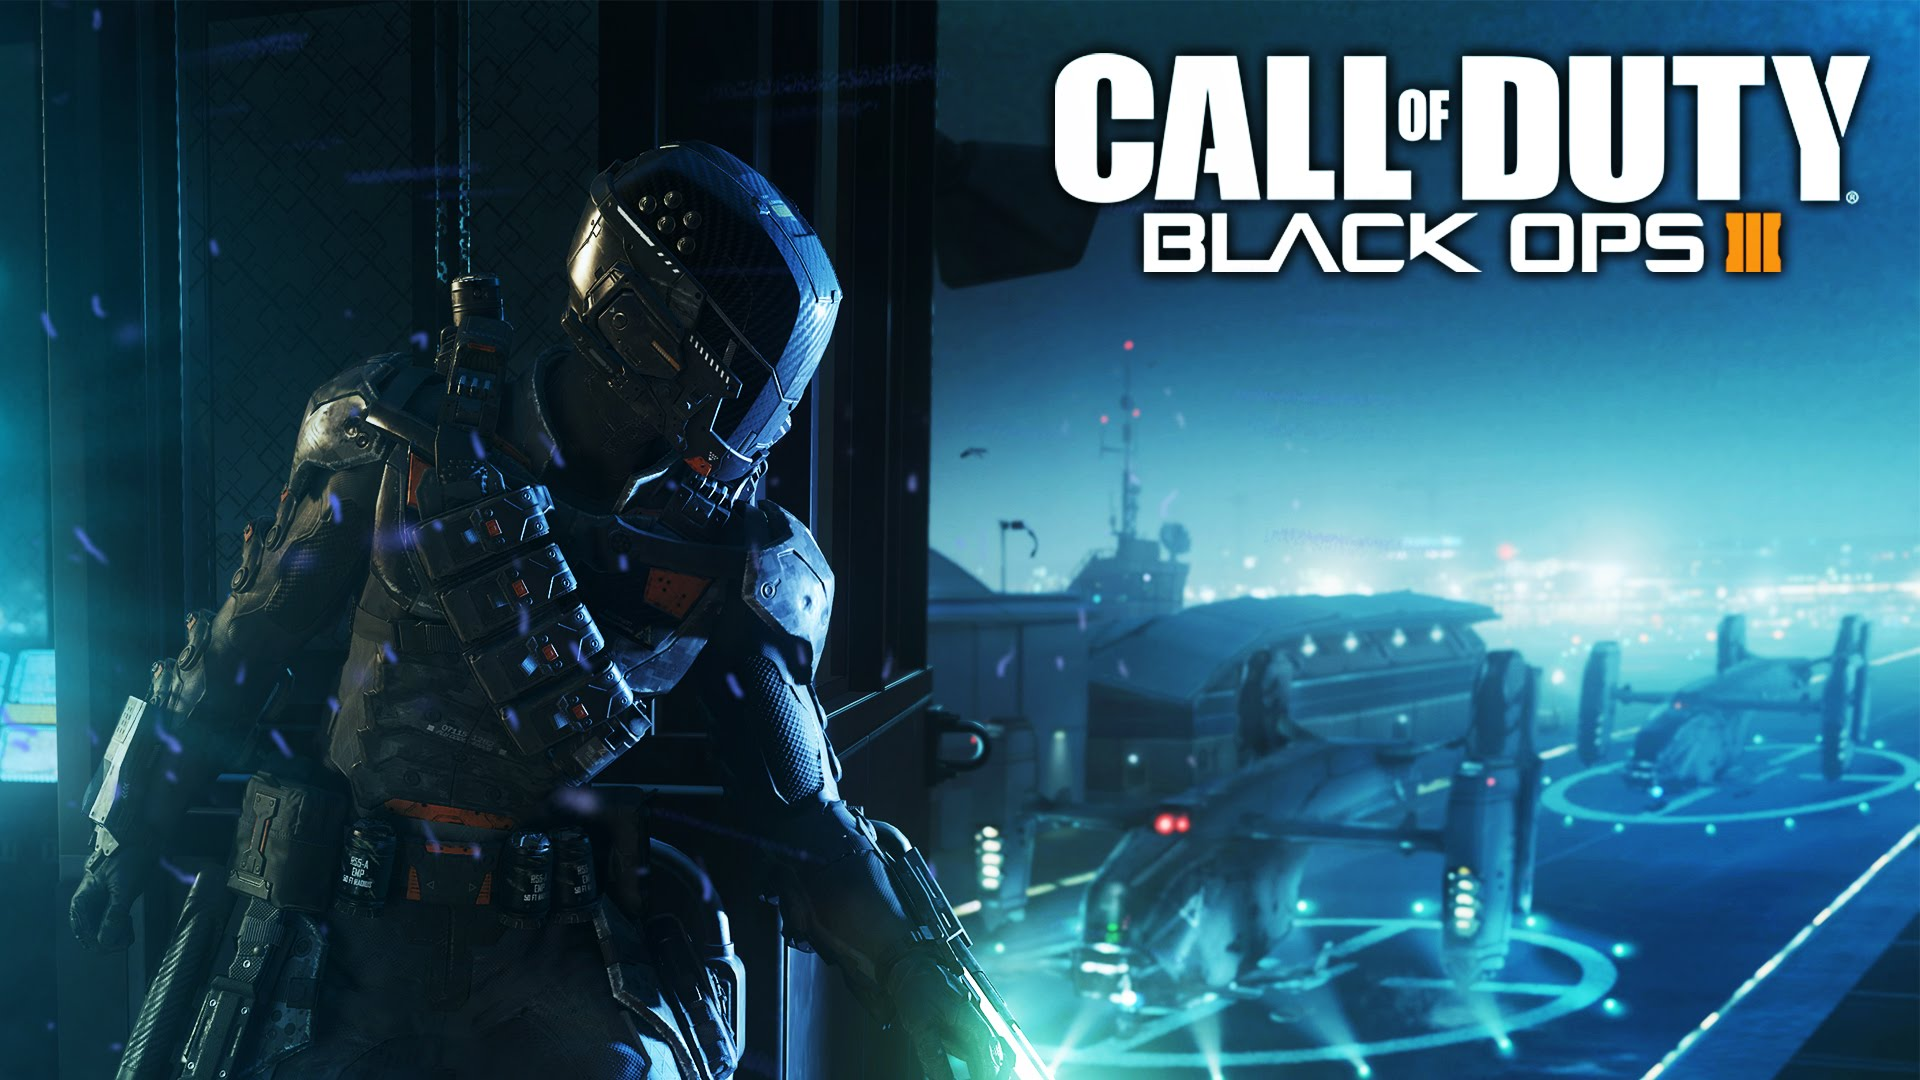 Call Of Duty Black Ops 3 Hd Wallpapers 7wallpapers Net